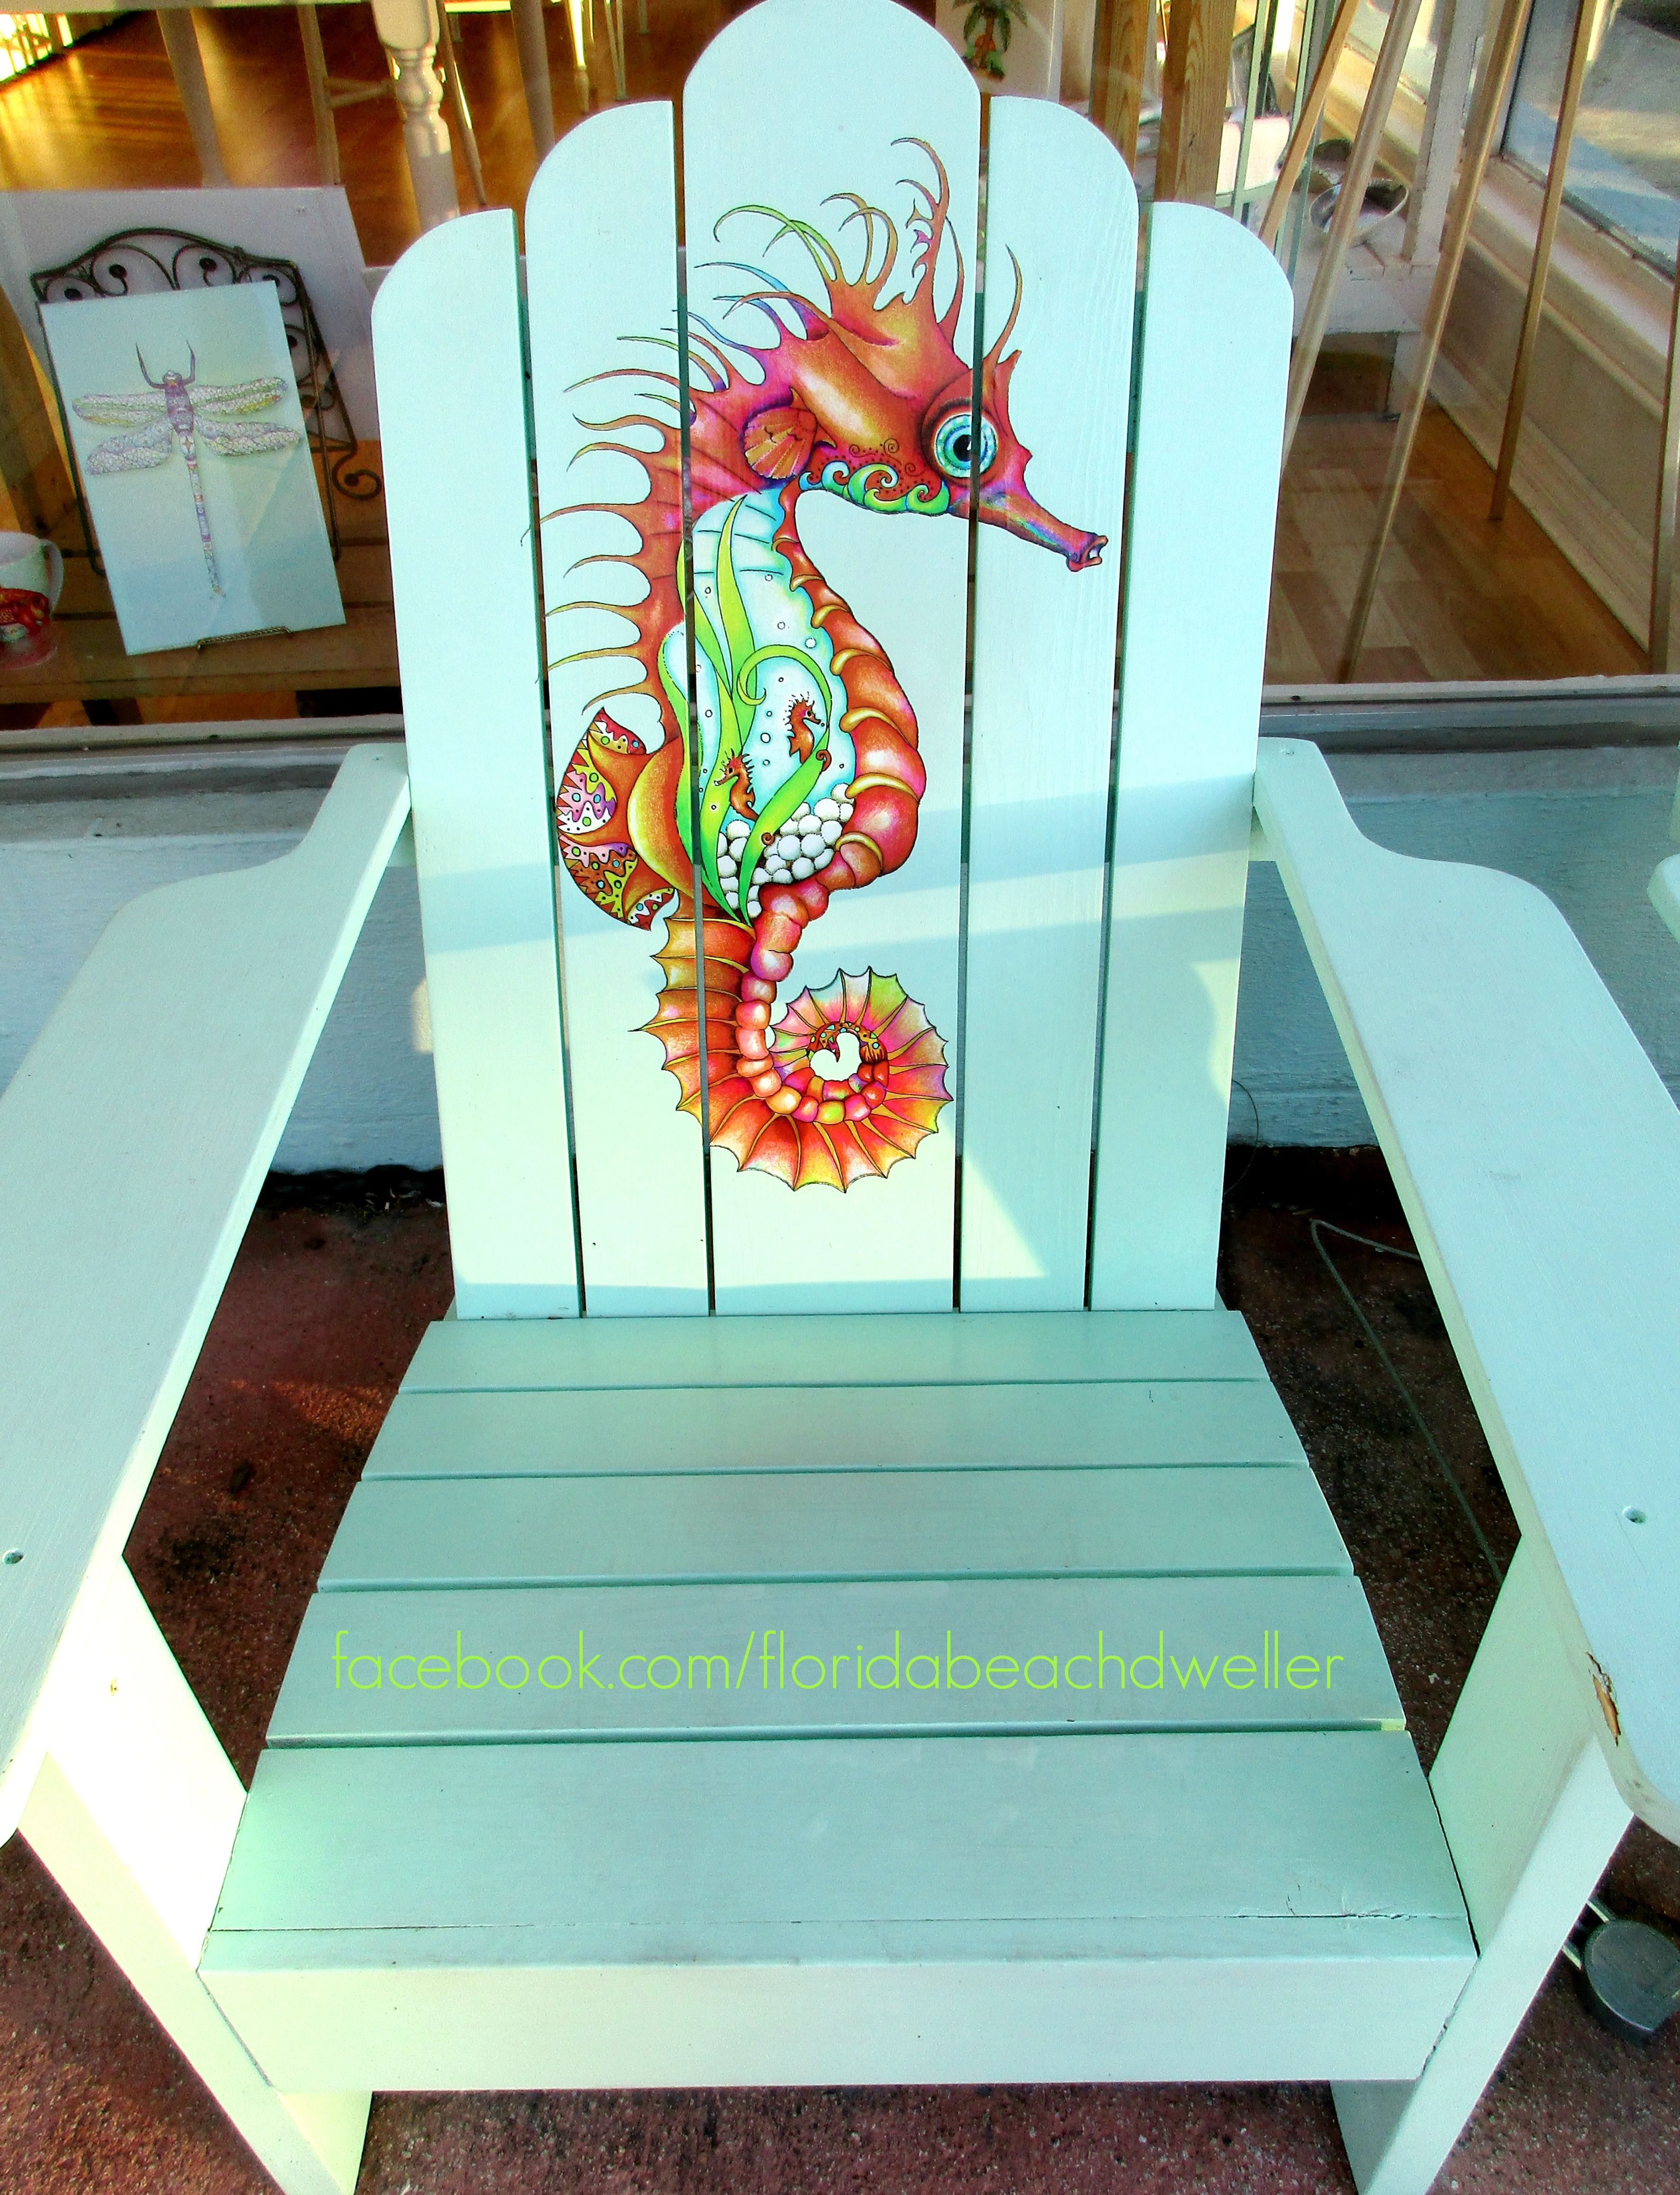 Adirondack Art Chair With Seahorse Painting By Nora Butler At Her Gallery Store In Naples